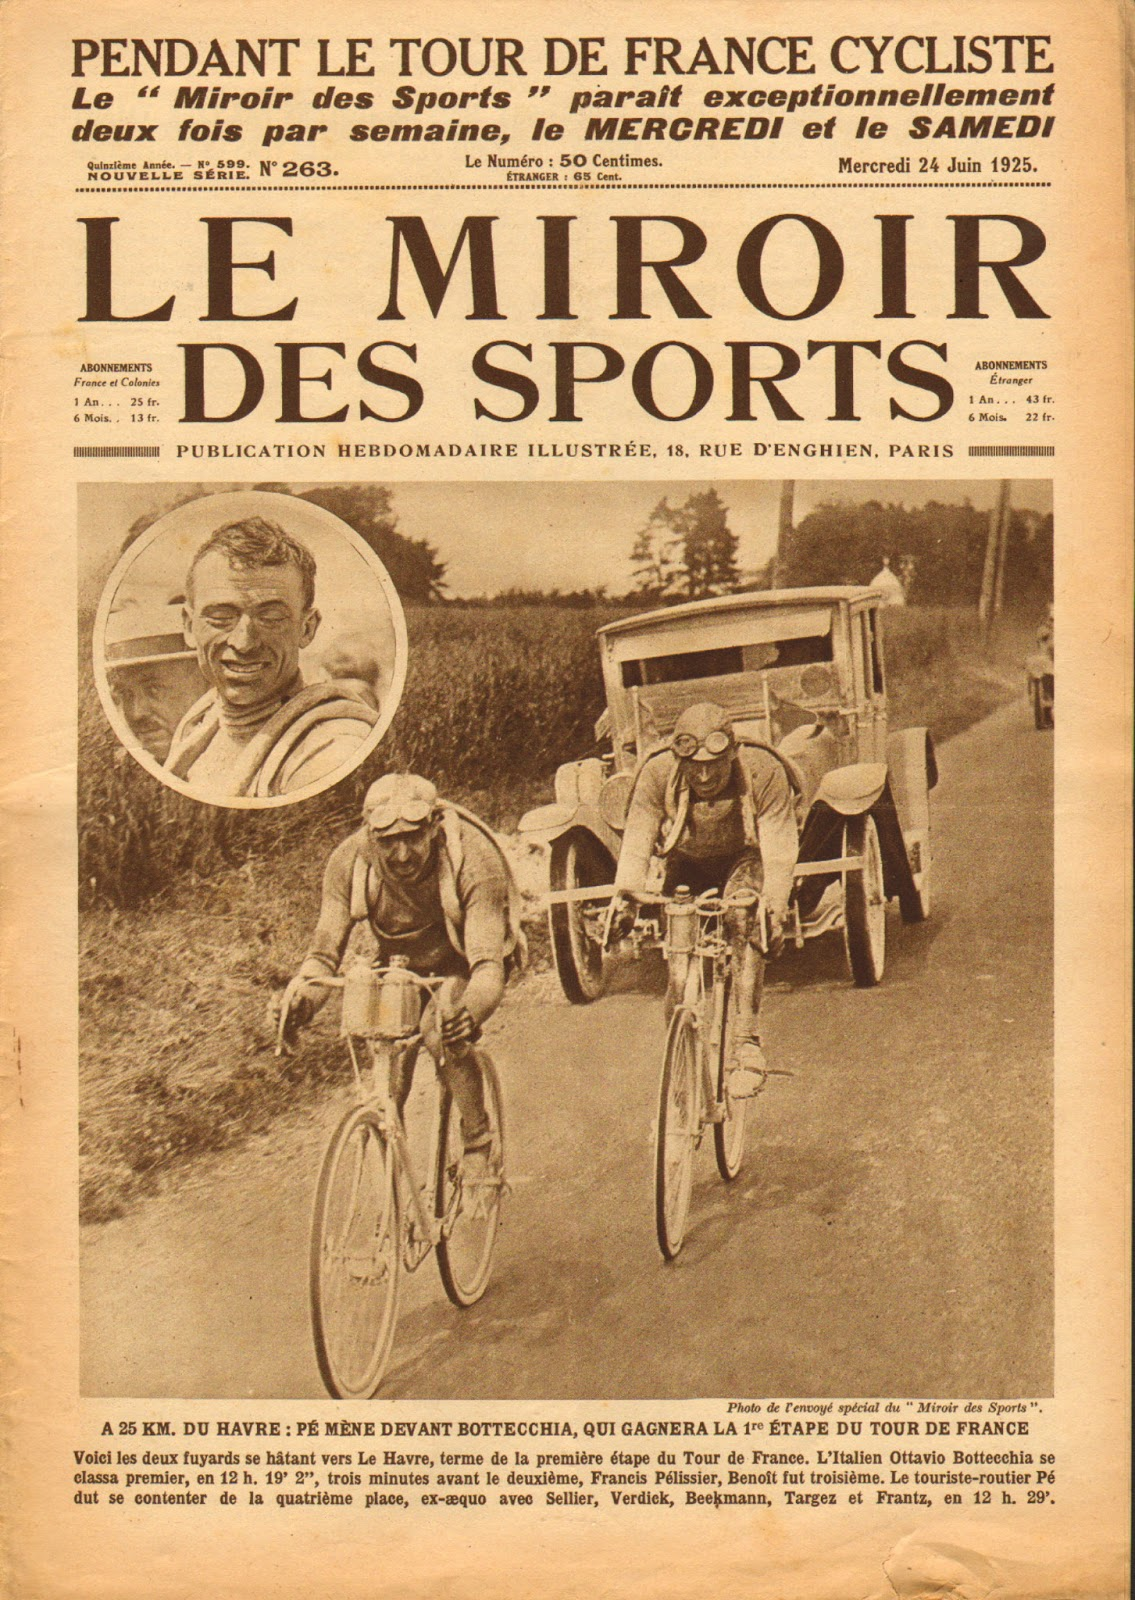 Cycling passions for Le miroir des sports